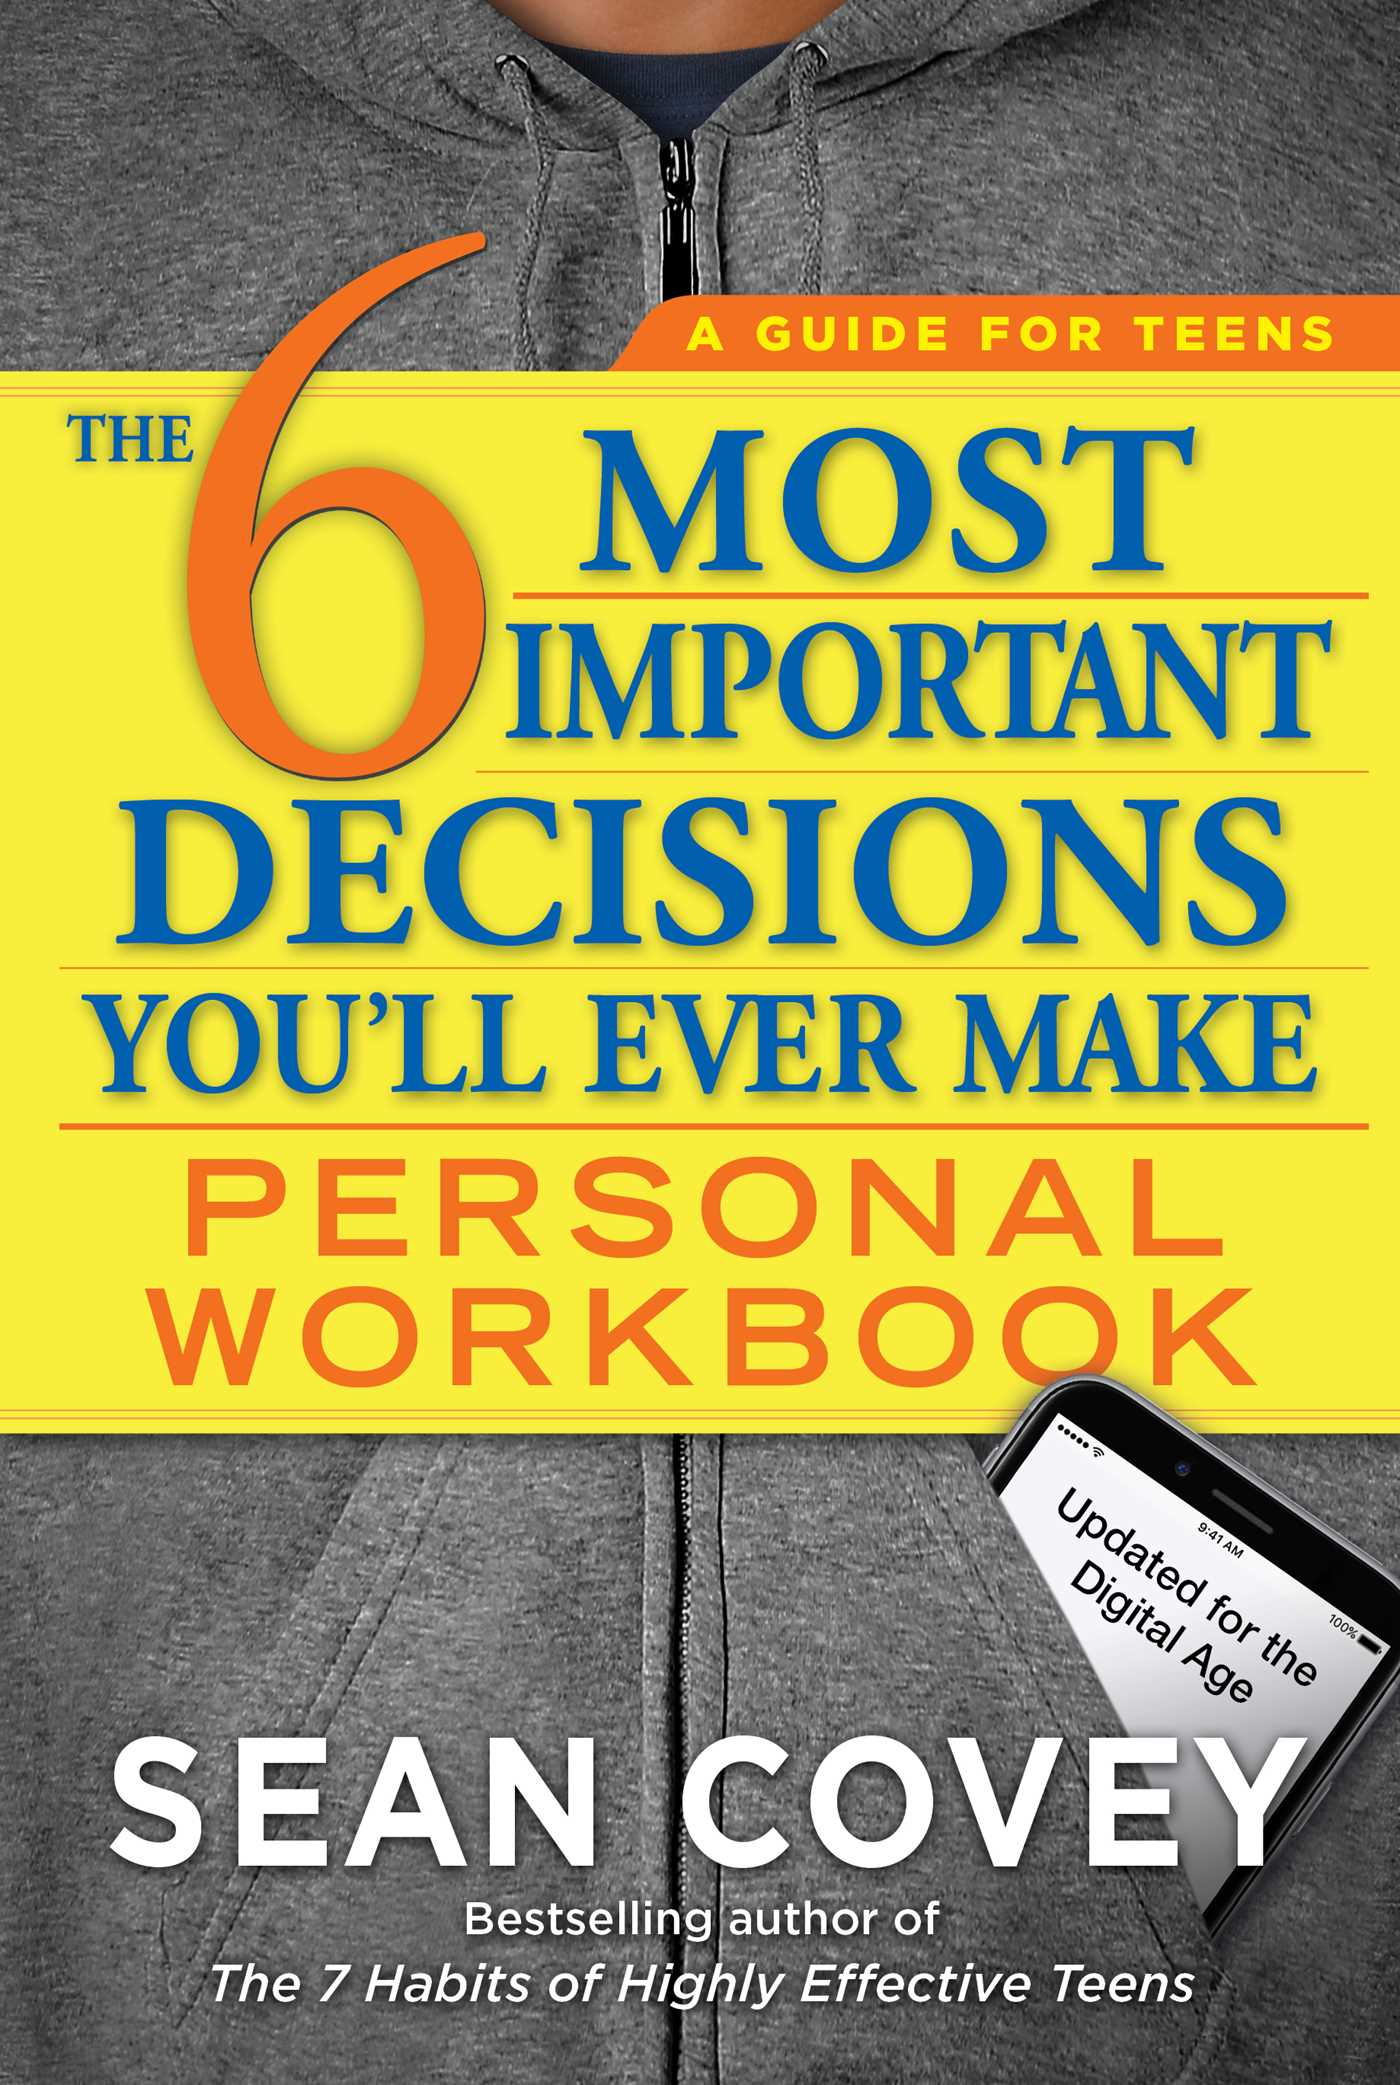 The 6 most important decisions youll ever make personal workbook the 6 most important decisions youll ever make personal workbook 9781501157141 hr fandeluxe Gallery